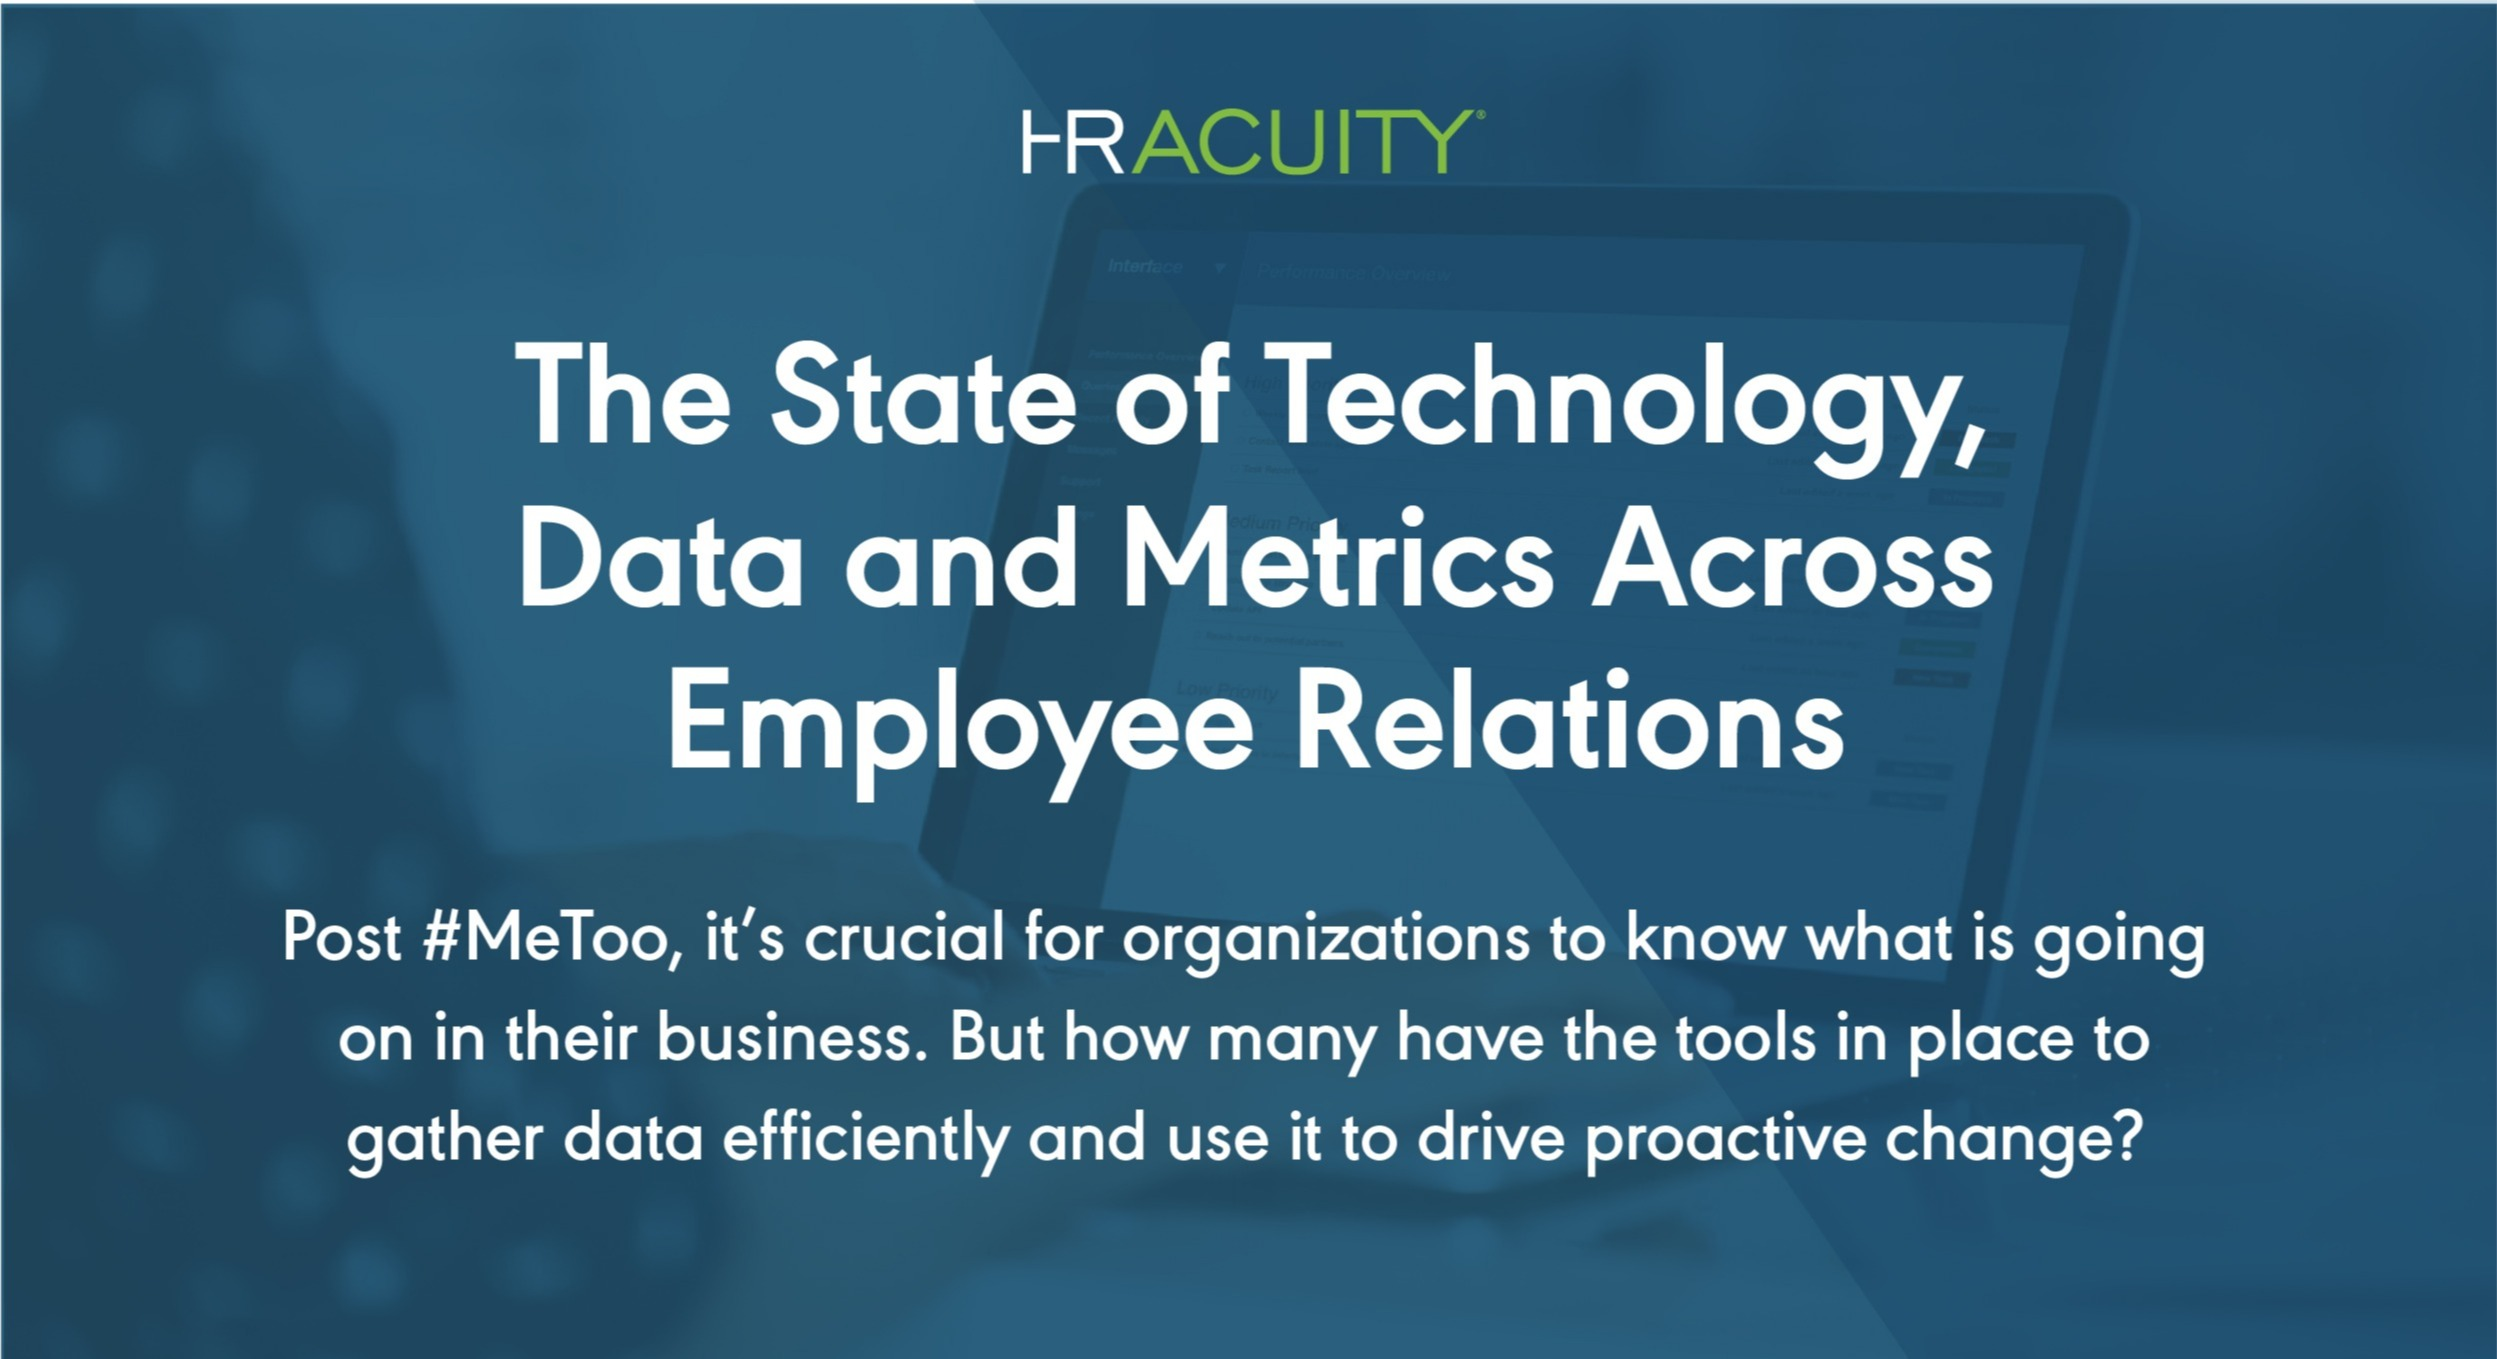 HR Acuity InfographicRd8-1